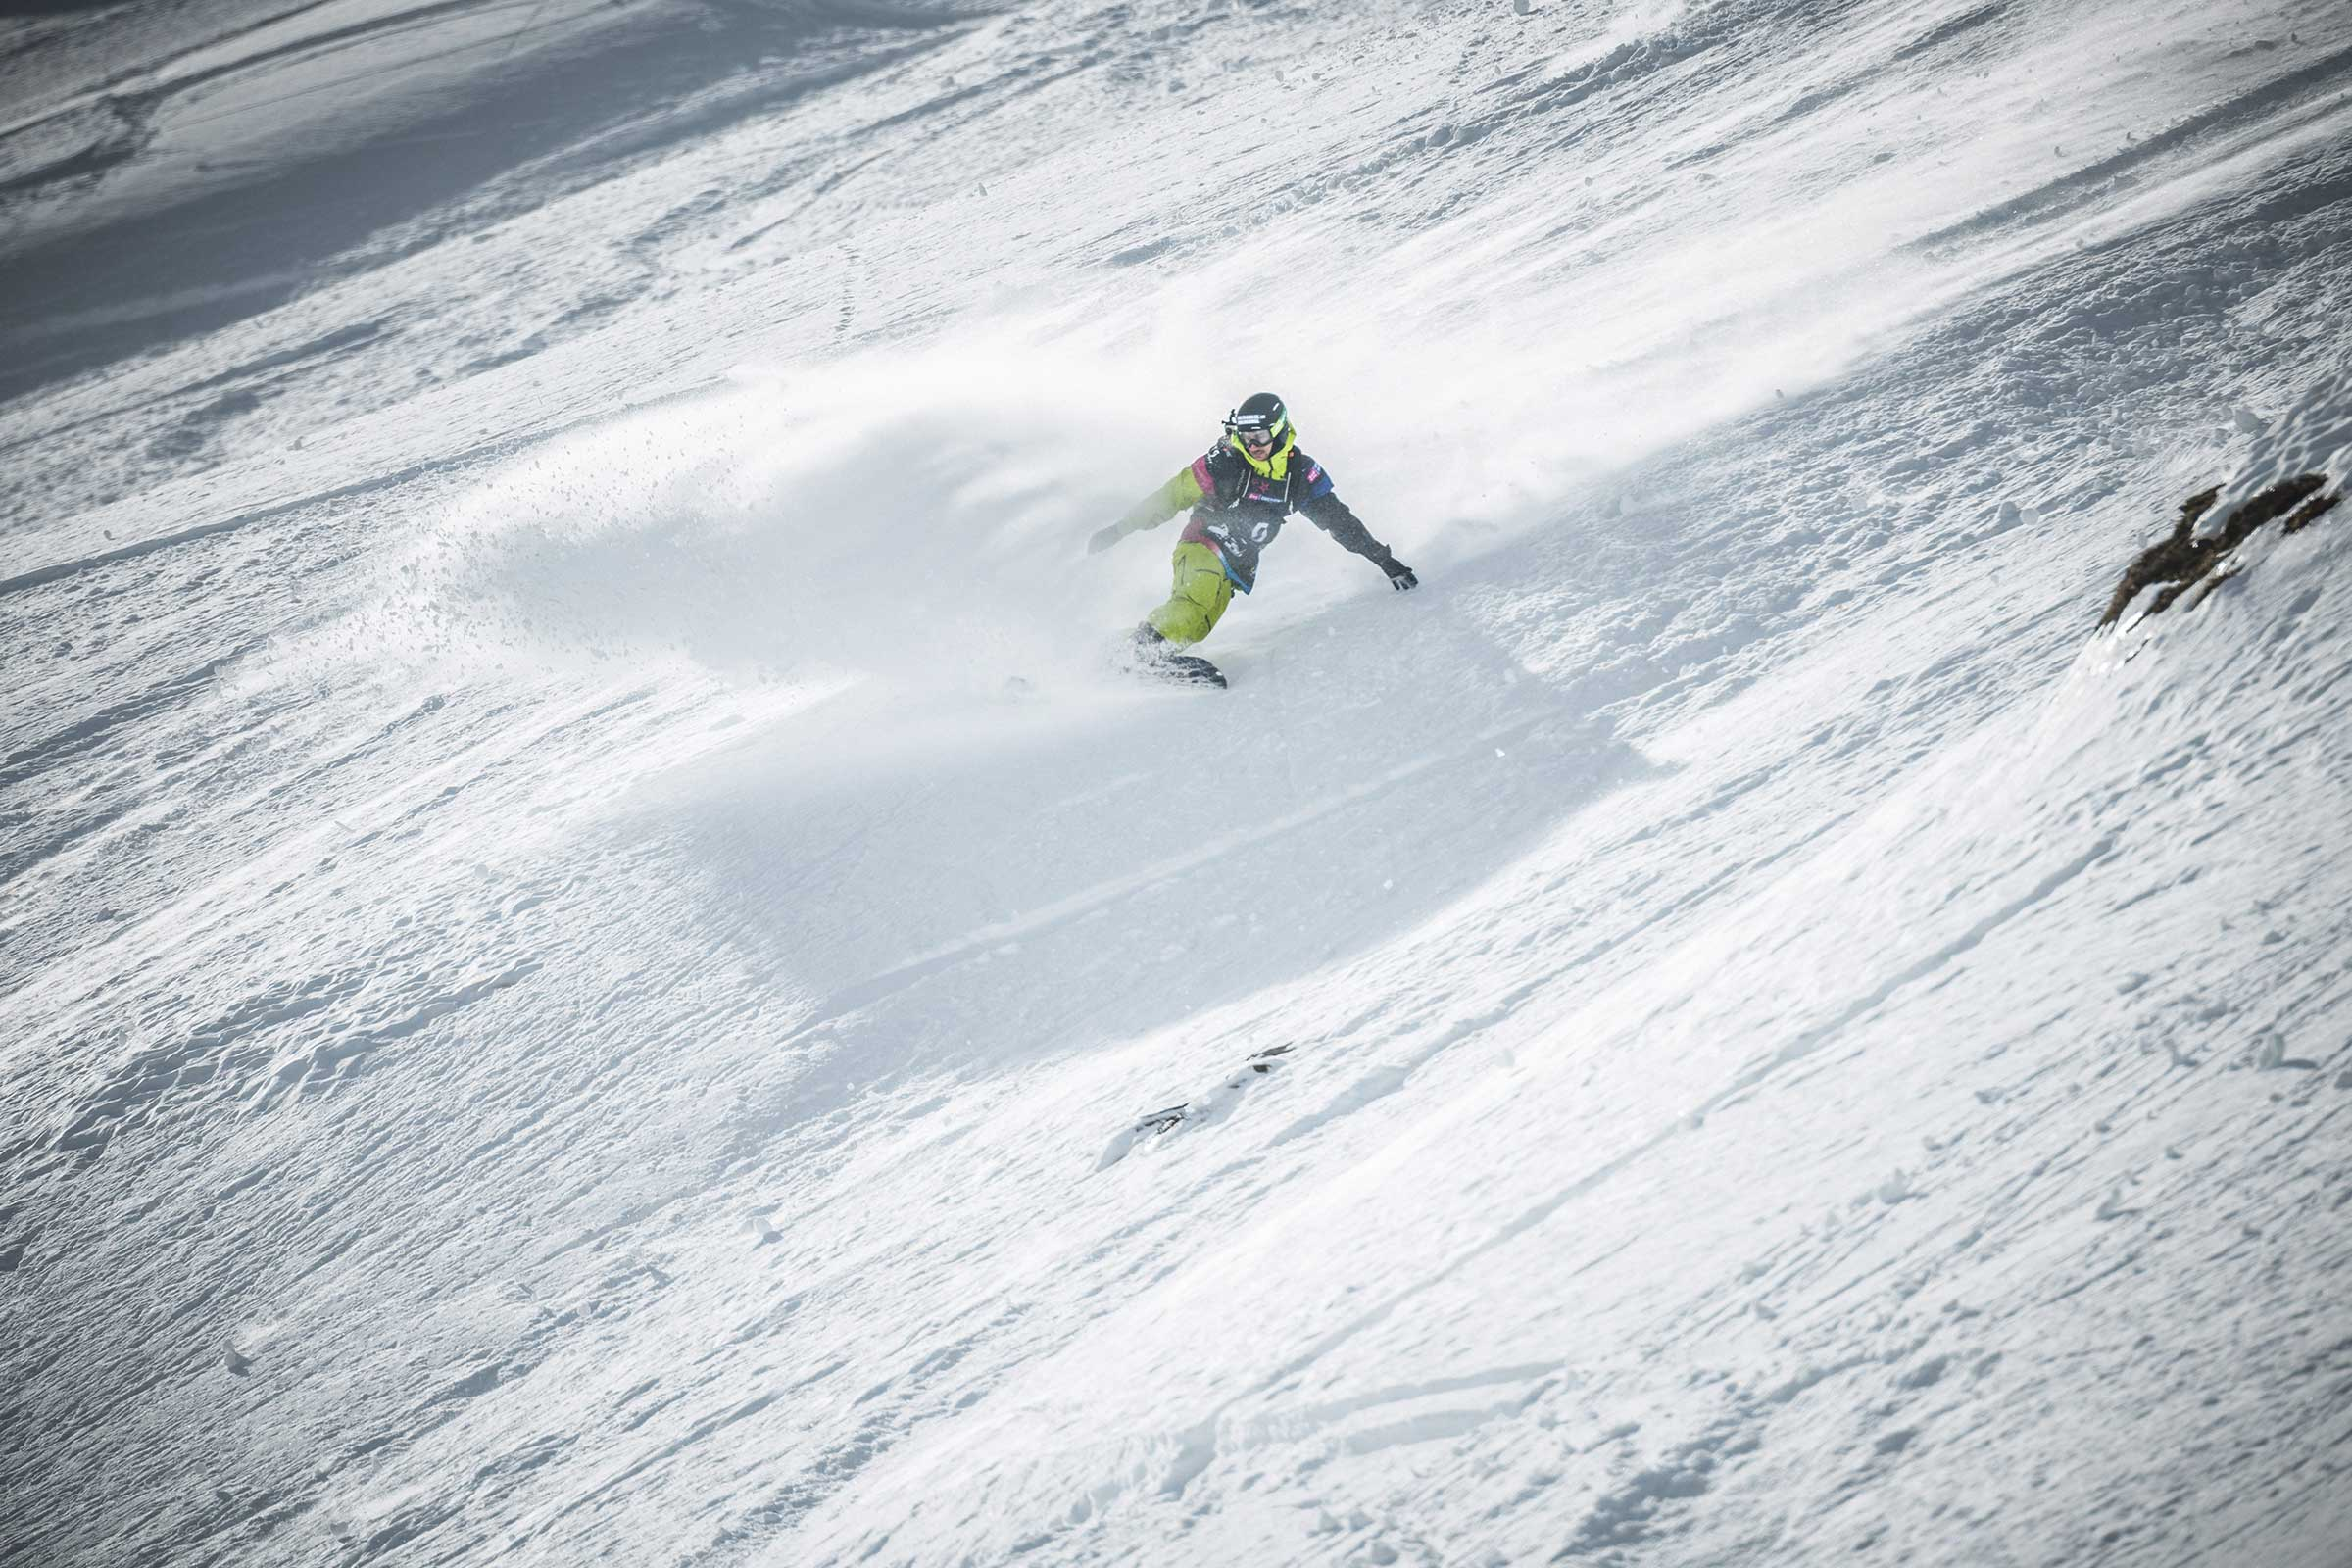 Snowboarder Backside Turn - Open Faces Obergurgl-Hochgurgl